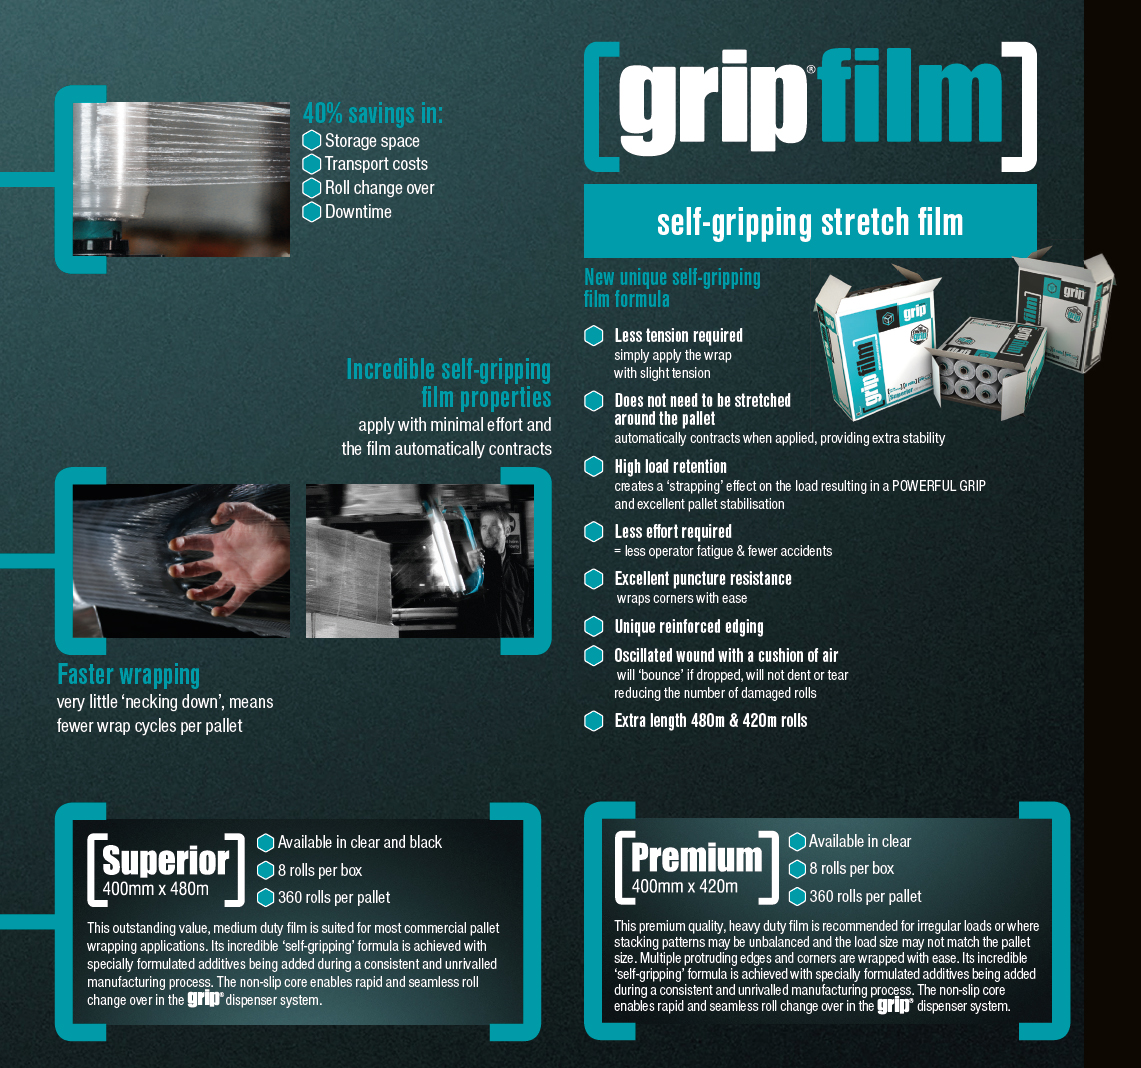 grip film stretch film